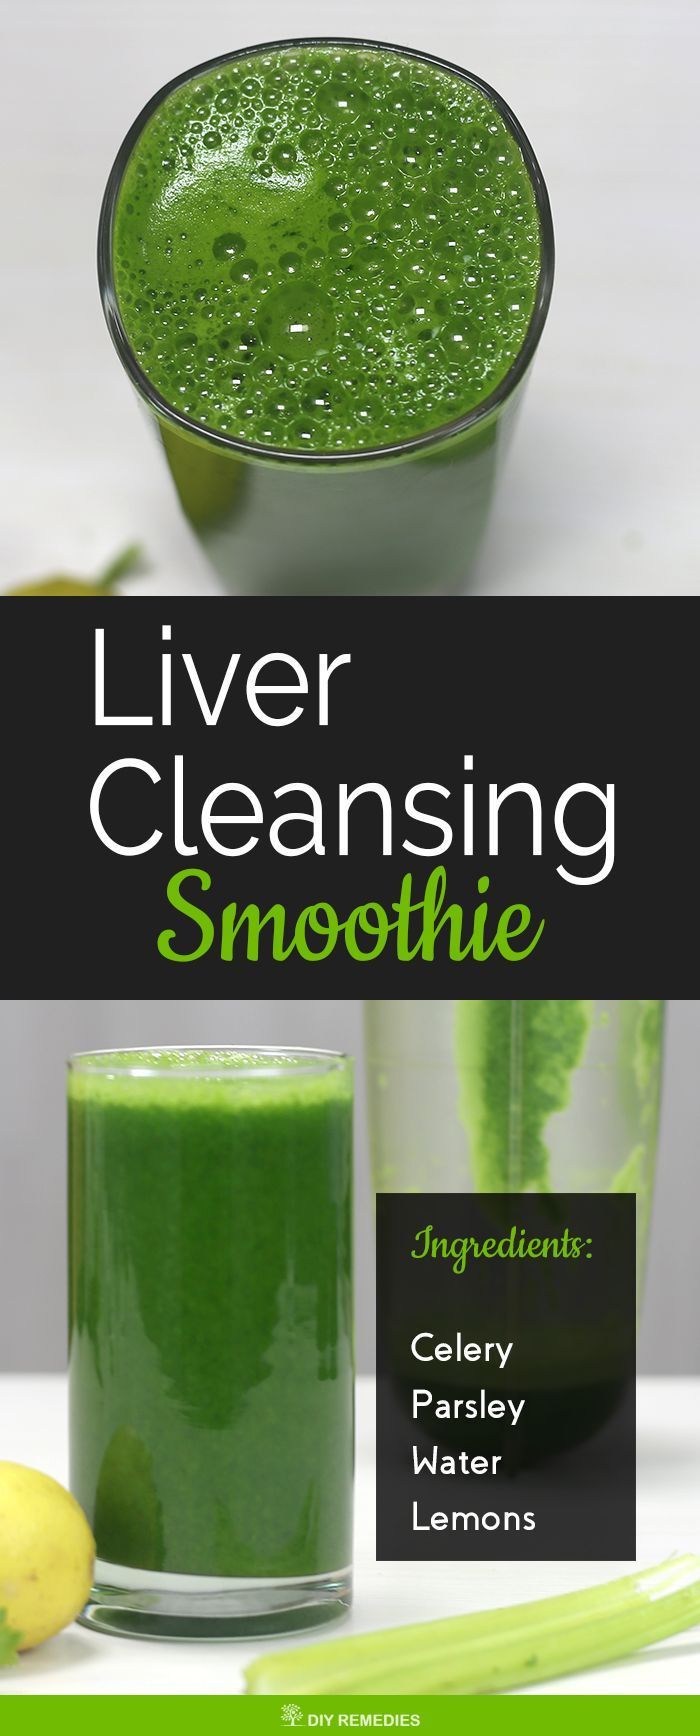 Liver Cleansing Smoothie    This liver detox smoothie helps to cure liver damage and supports the liver to boost the detoxification process. This is a 100% vegan and gluten-free smoothie suitable for people with a restrictive diet.  #DIYRemedies #Smoothie